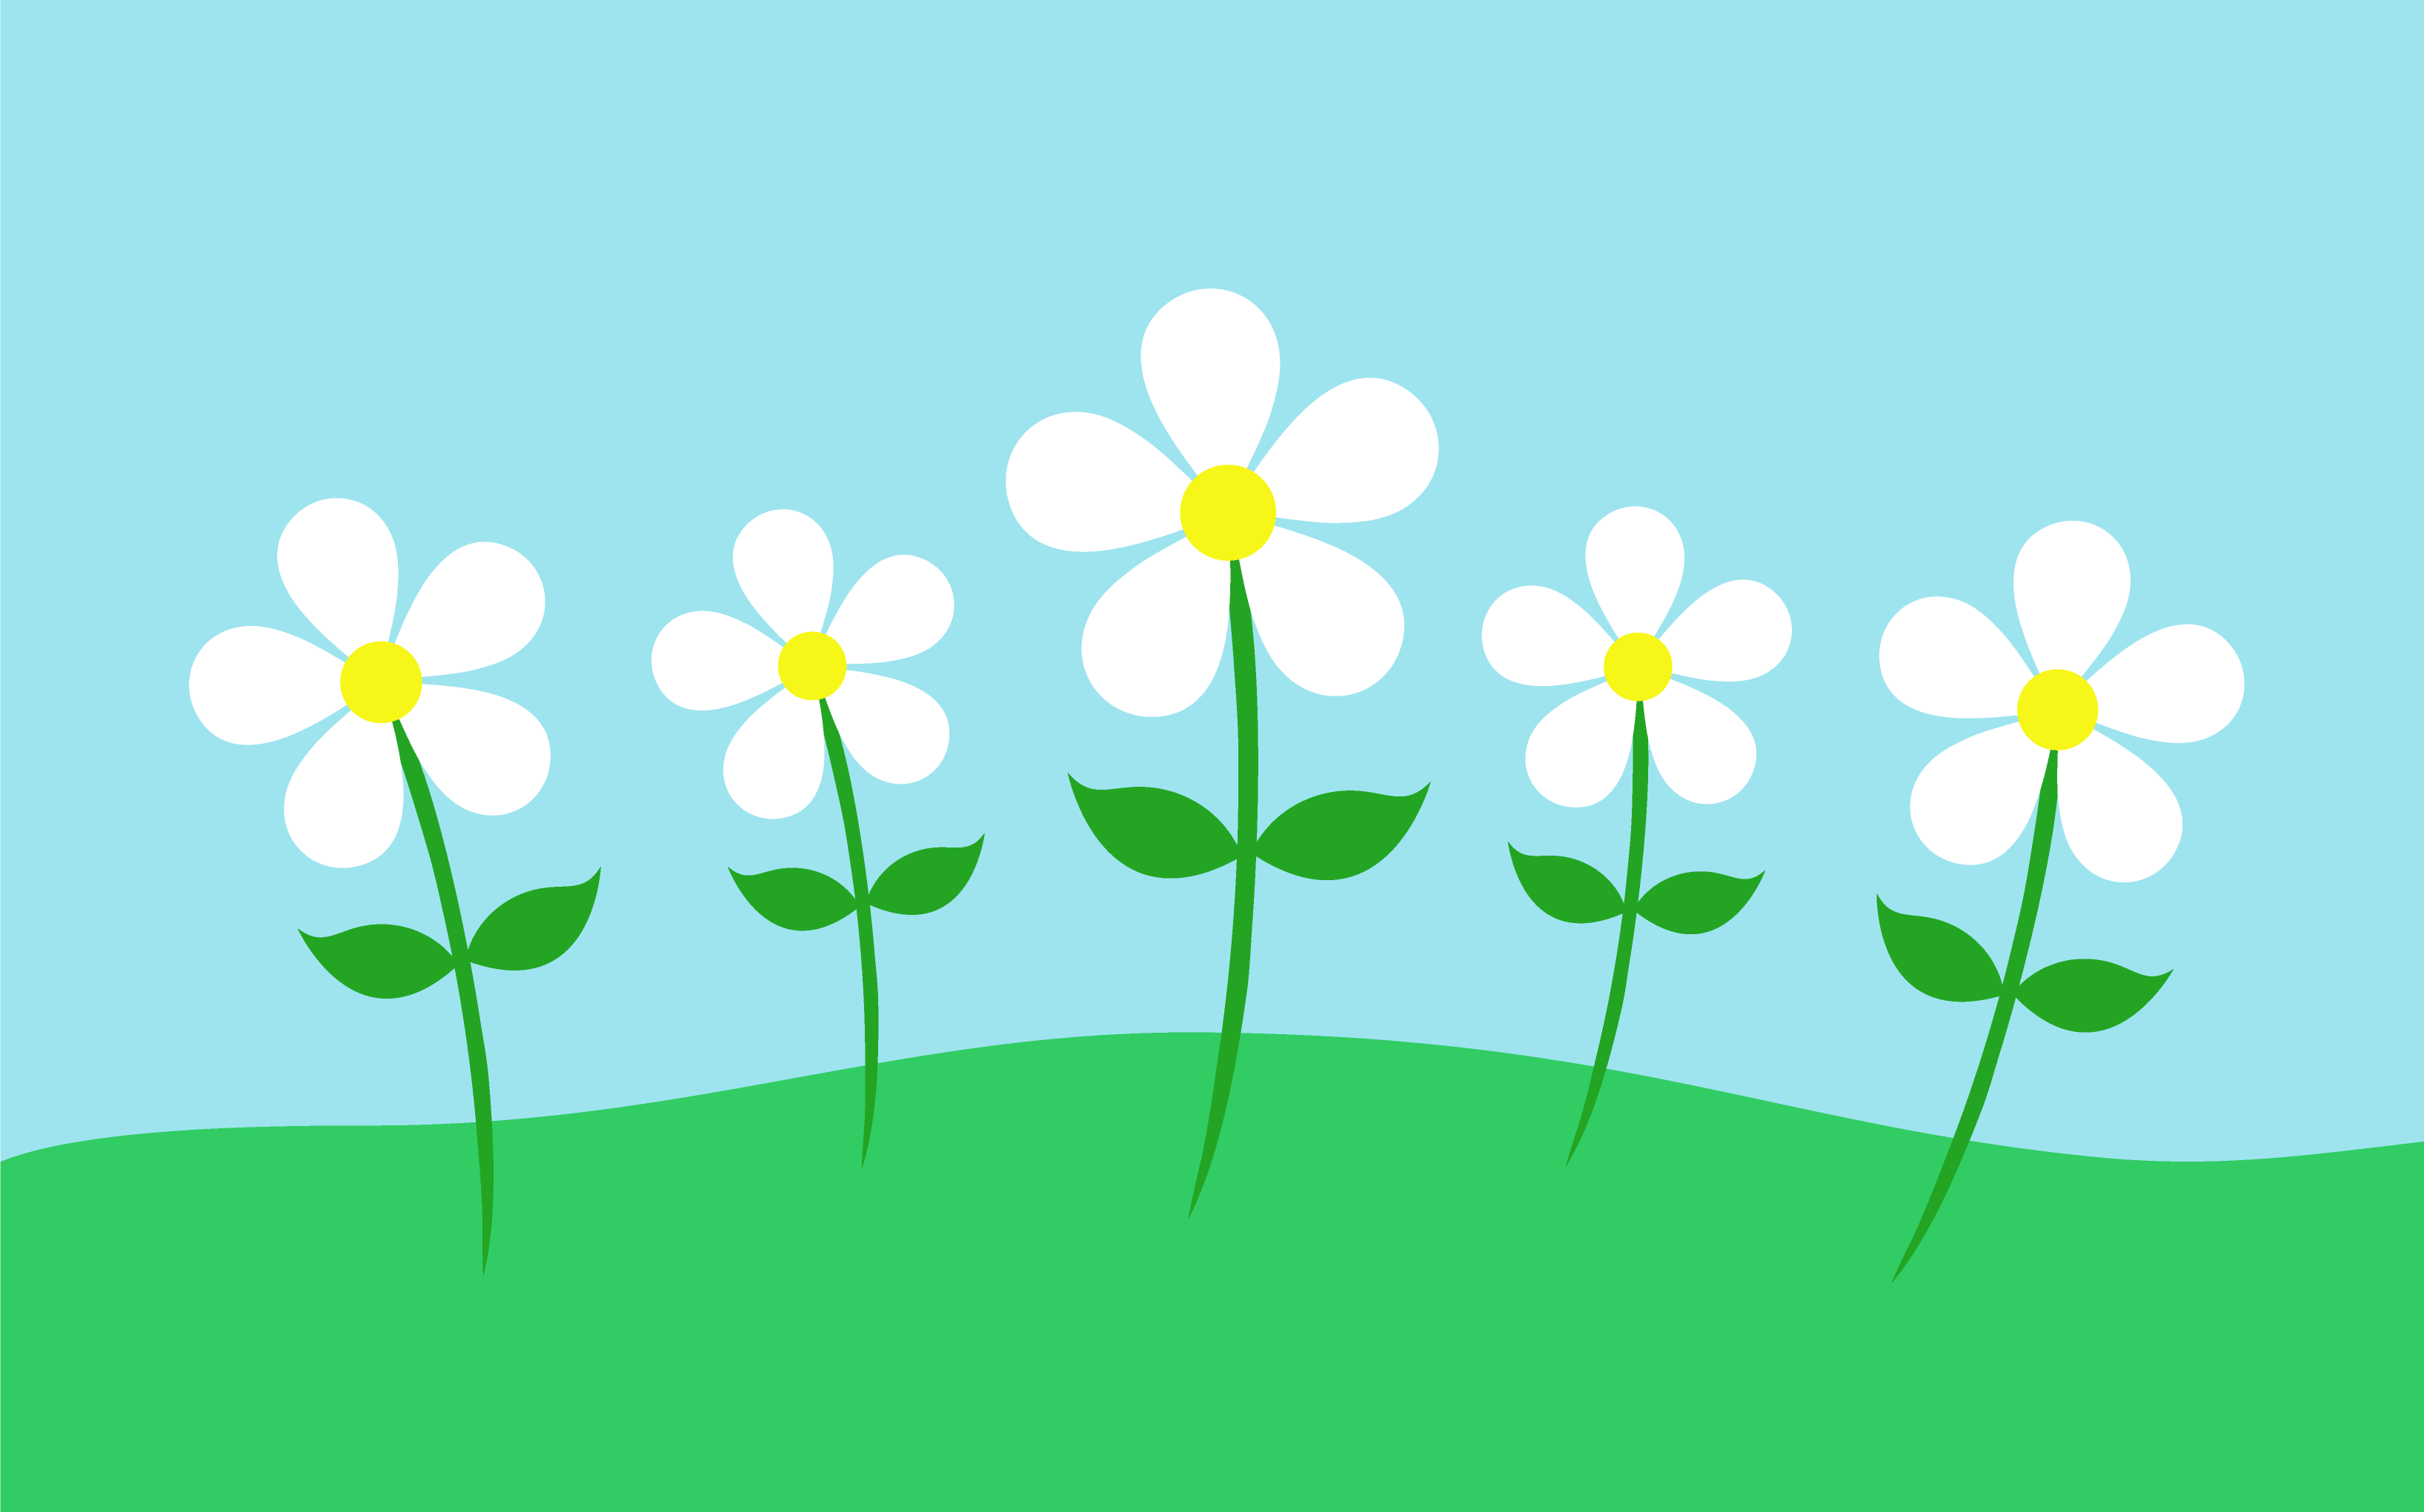 Image detail for daisy flowers in simple landscape free clip art image detail for daisy flowers in simple landscape free clip art izmirmasajfo